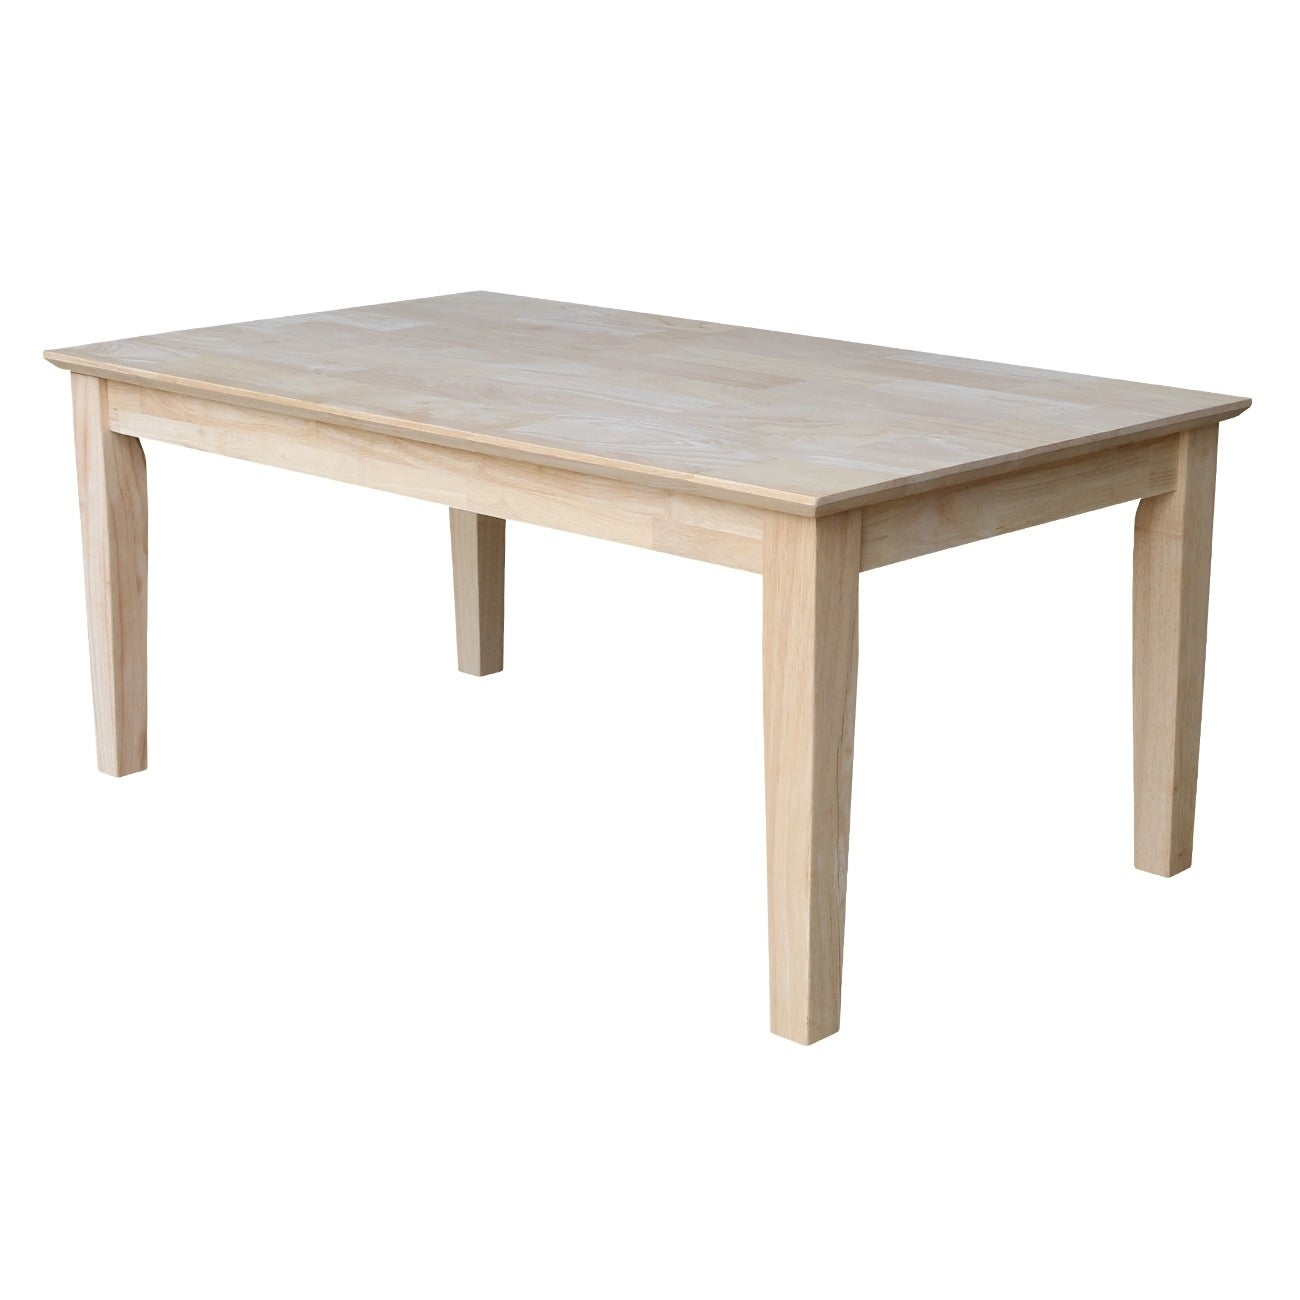 Shop shaker unfinished solid parawood tall coffee table free shipping today overstock com 9362943